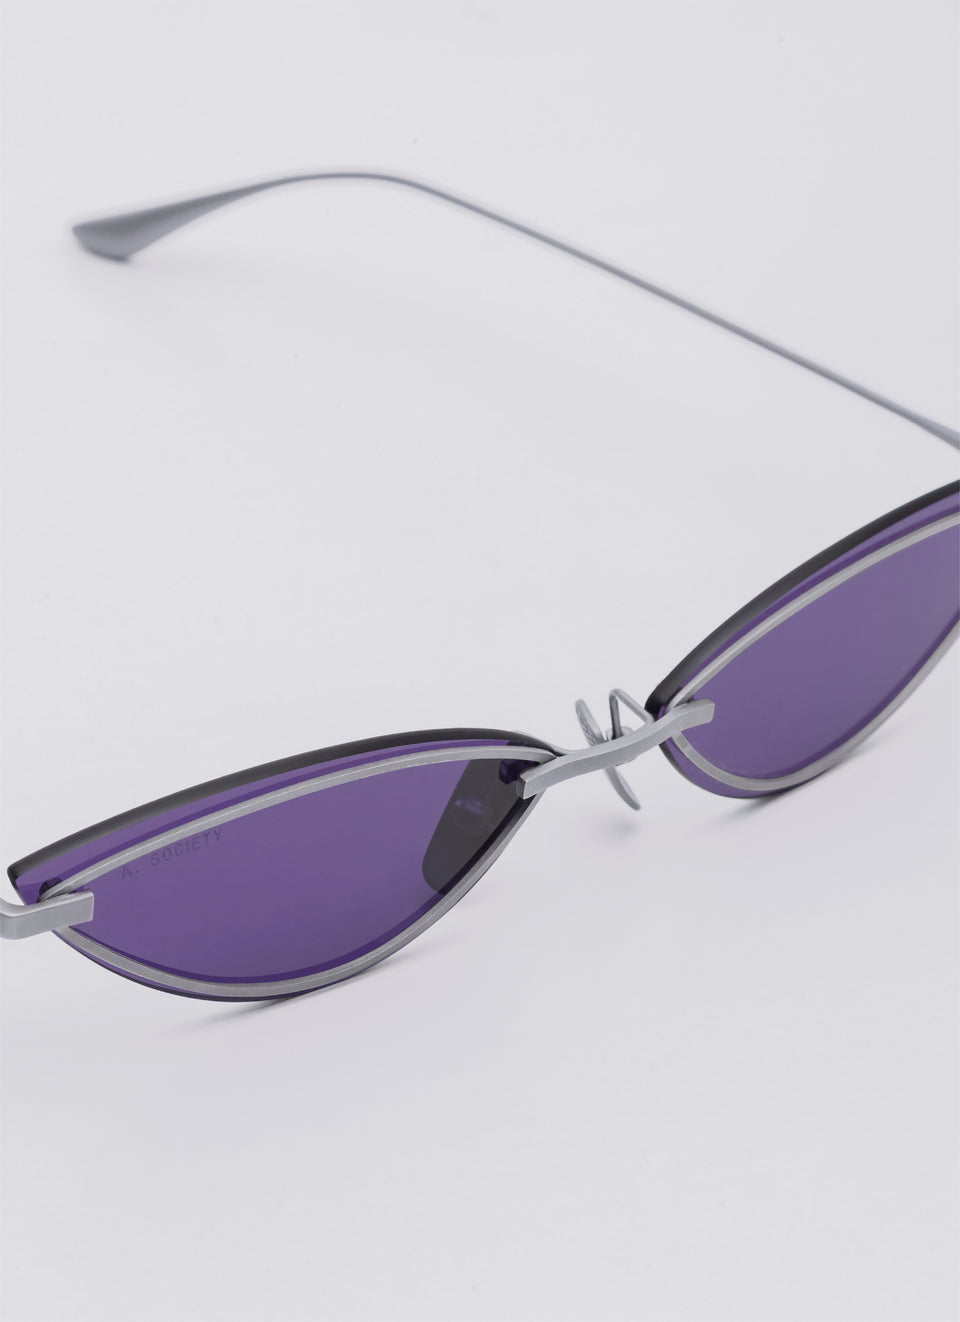 A SOCIETY LOLA - Purple Titanium Cat-Eye Sunglasses Detail